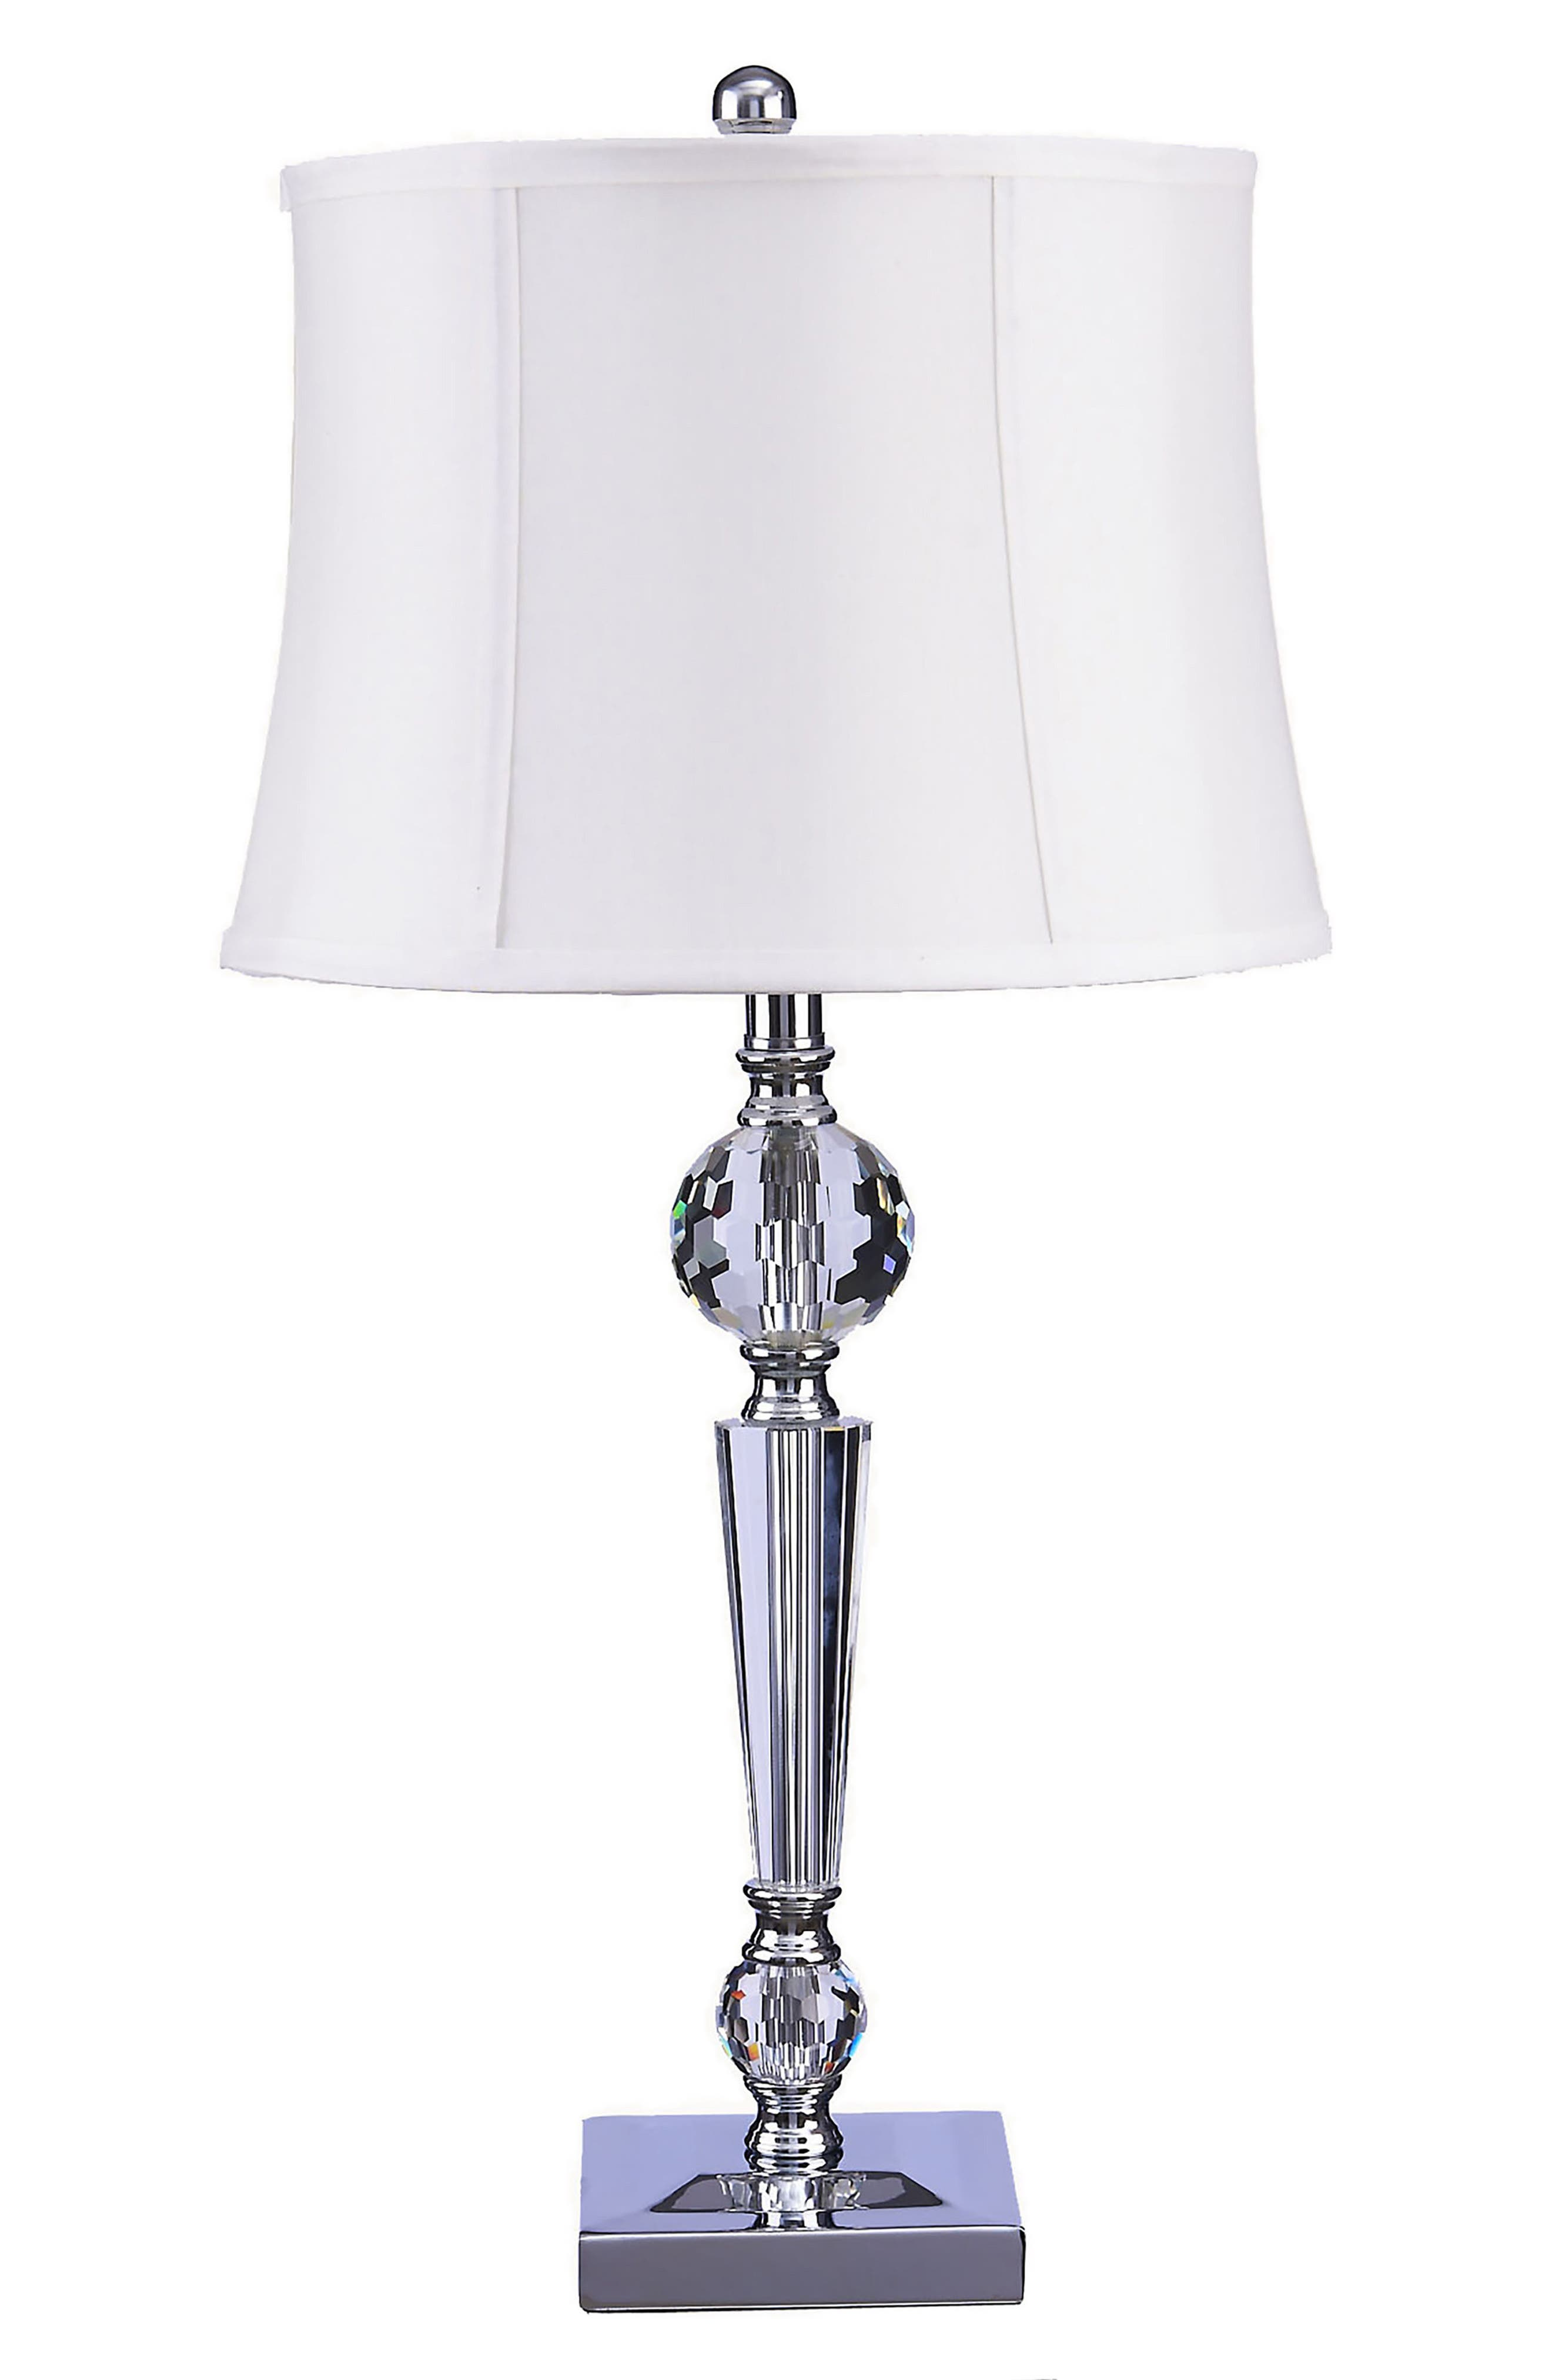 Alternate Image 1 Selected - JAlexander Camile Table Lamp